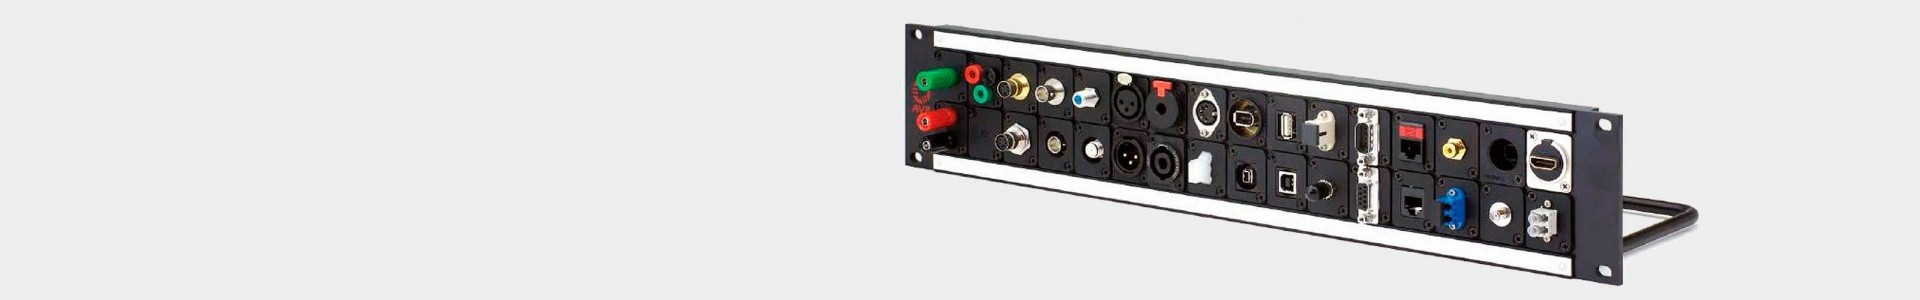 Audio, video and configurable patch panel - Avacab Audiovisuales